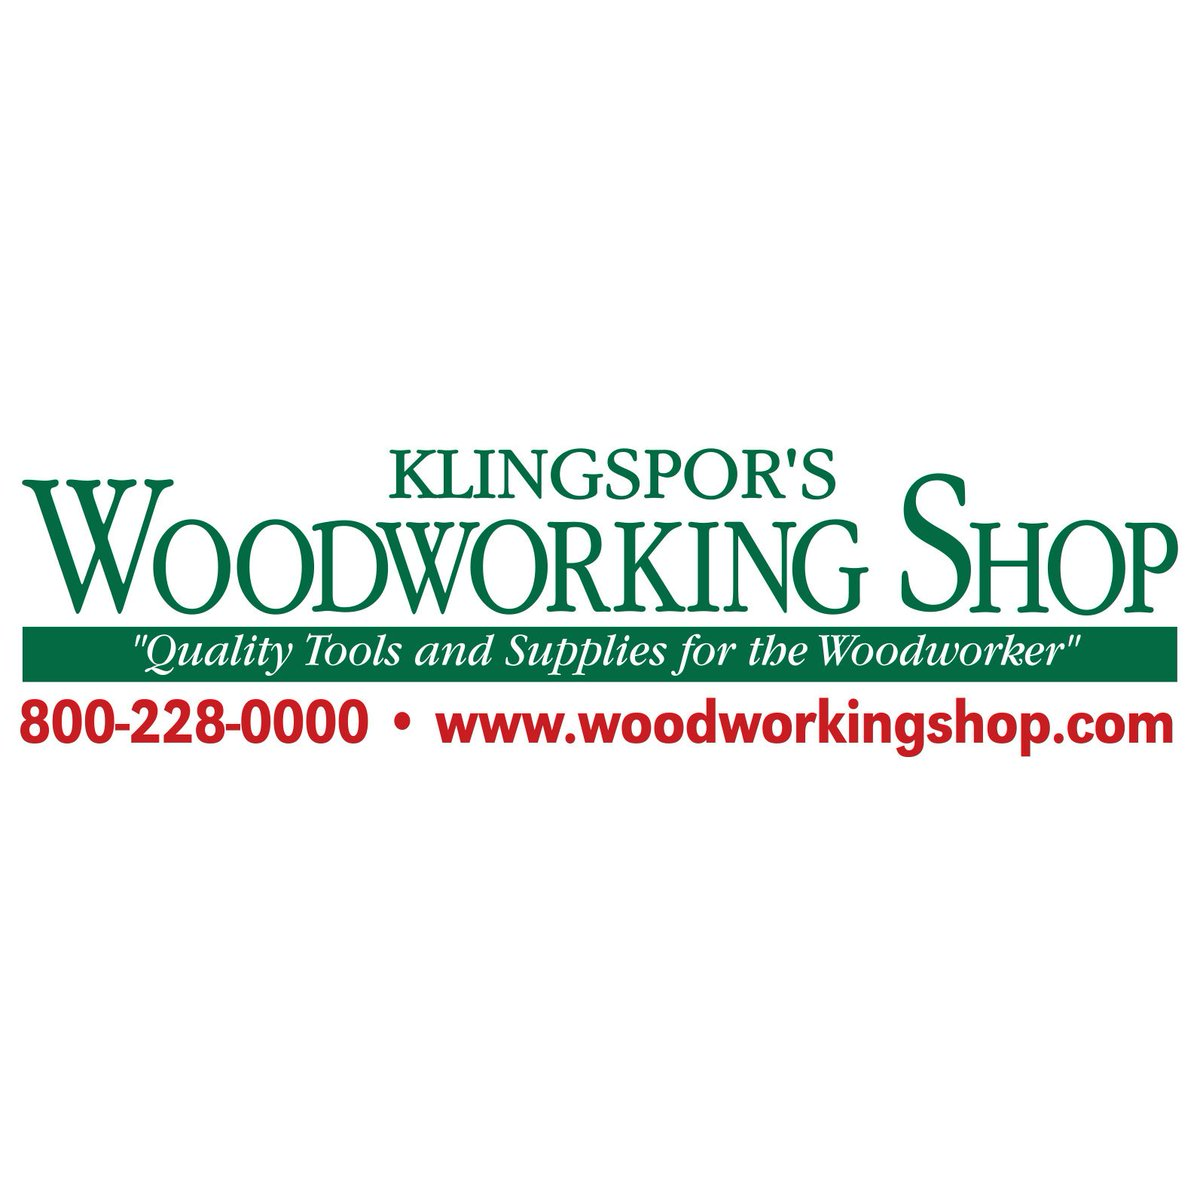 Klingspor Woodworking Shop